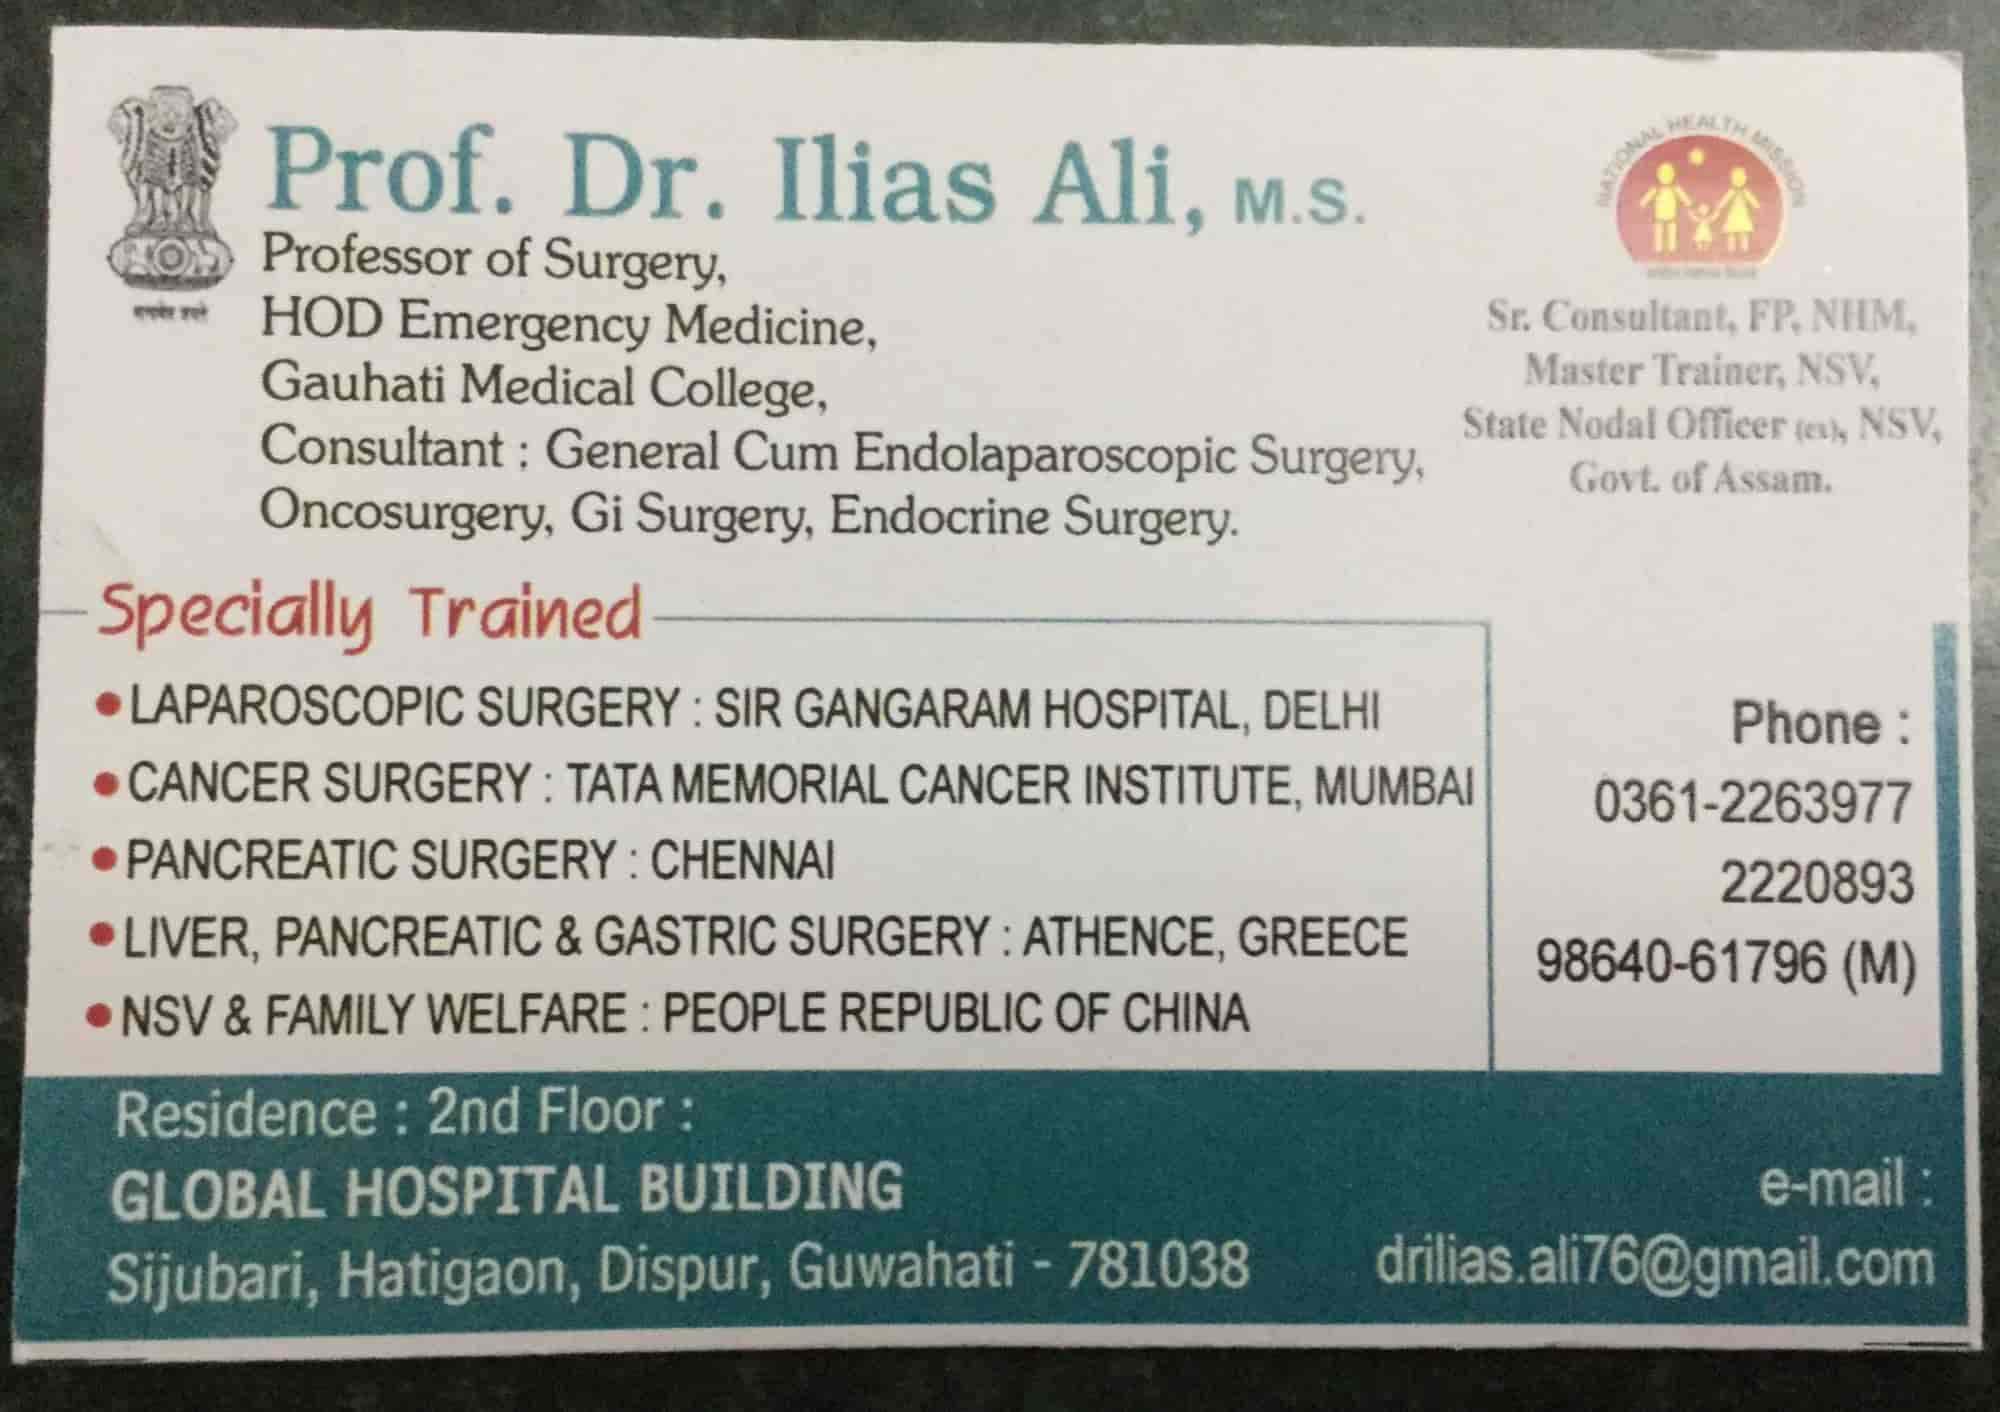 Global hospital of surgery photos hatigaon guwahati pictures visiting card global hospital of surgery photos hatigaon guwahati hospitals colourmoves